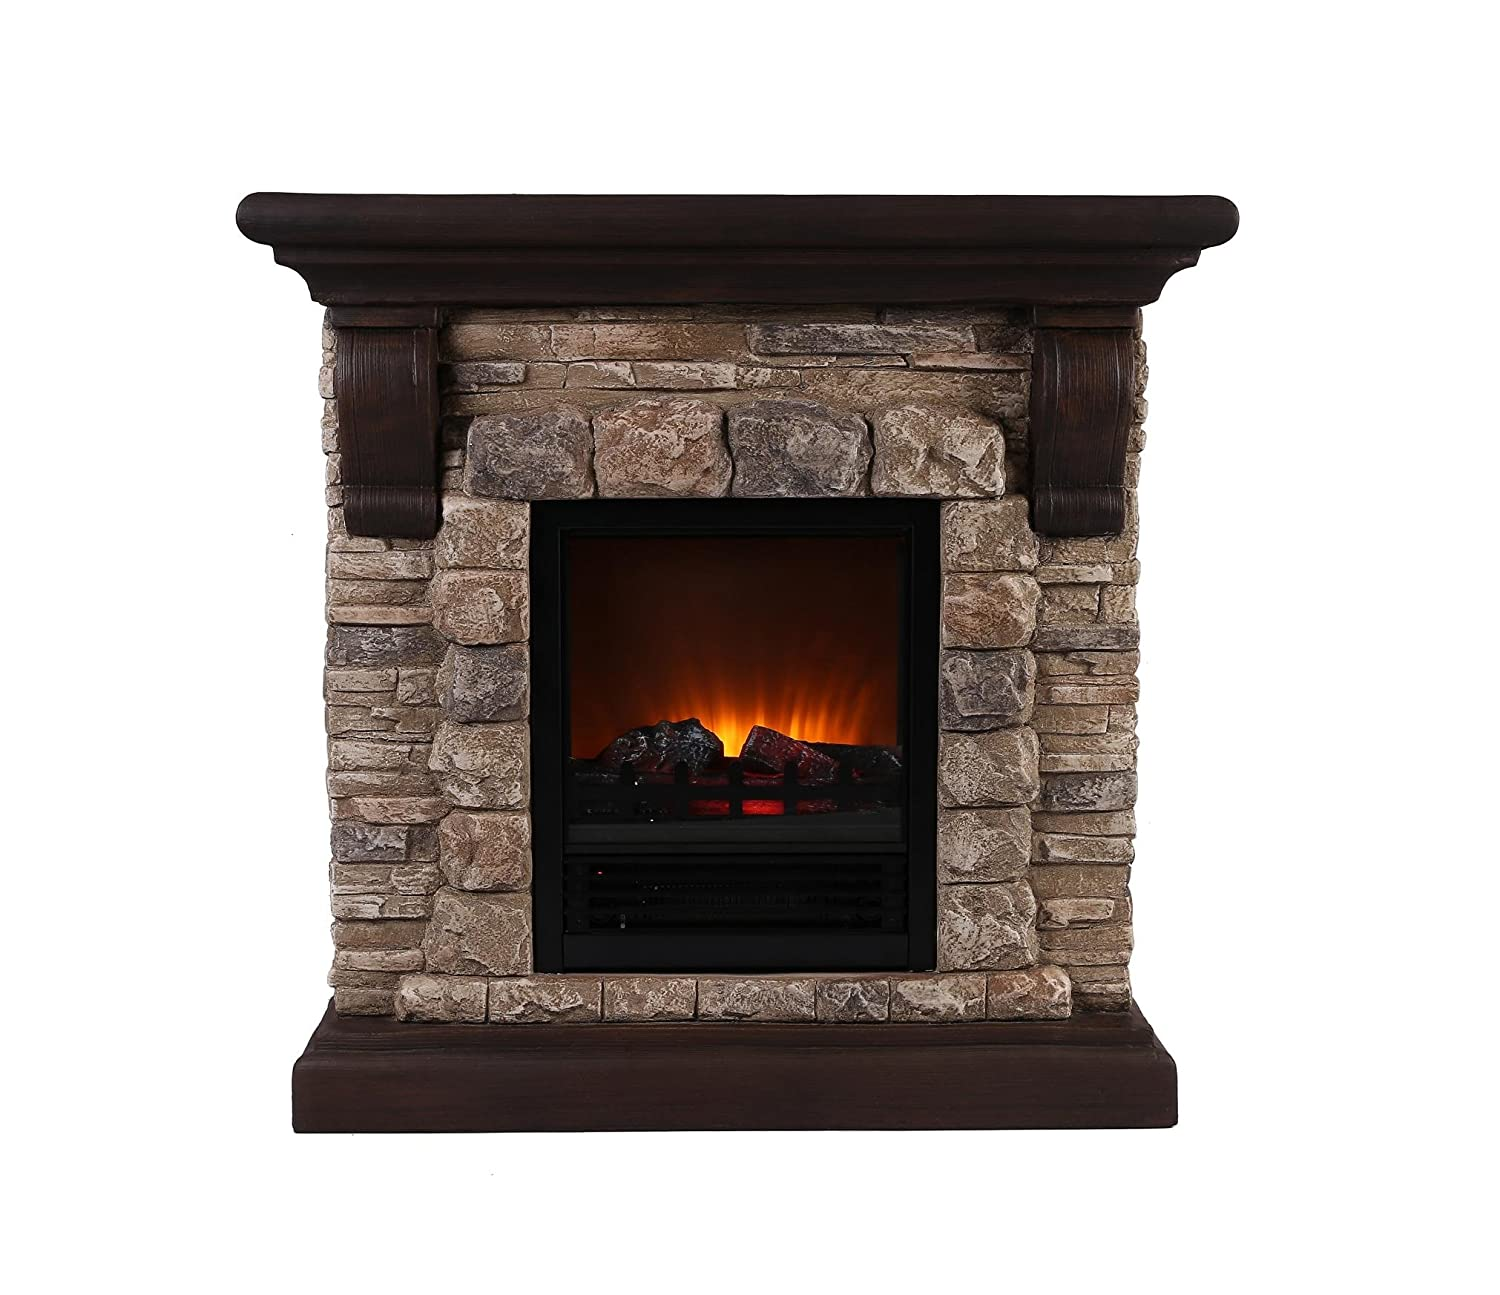 dp canada mini amazon fireplace heater improvement home portable tools wood northwest electric w